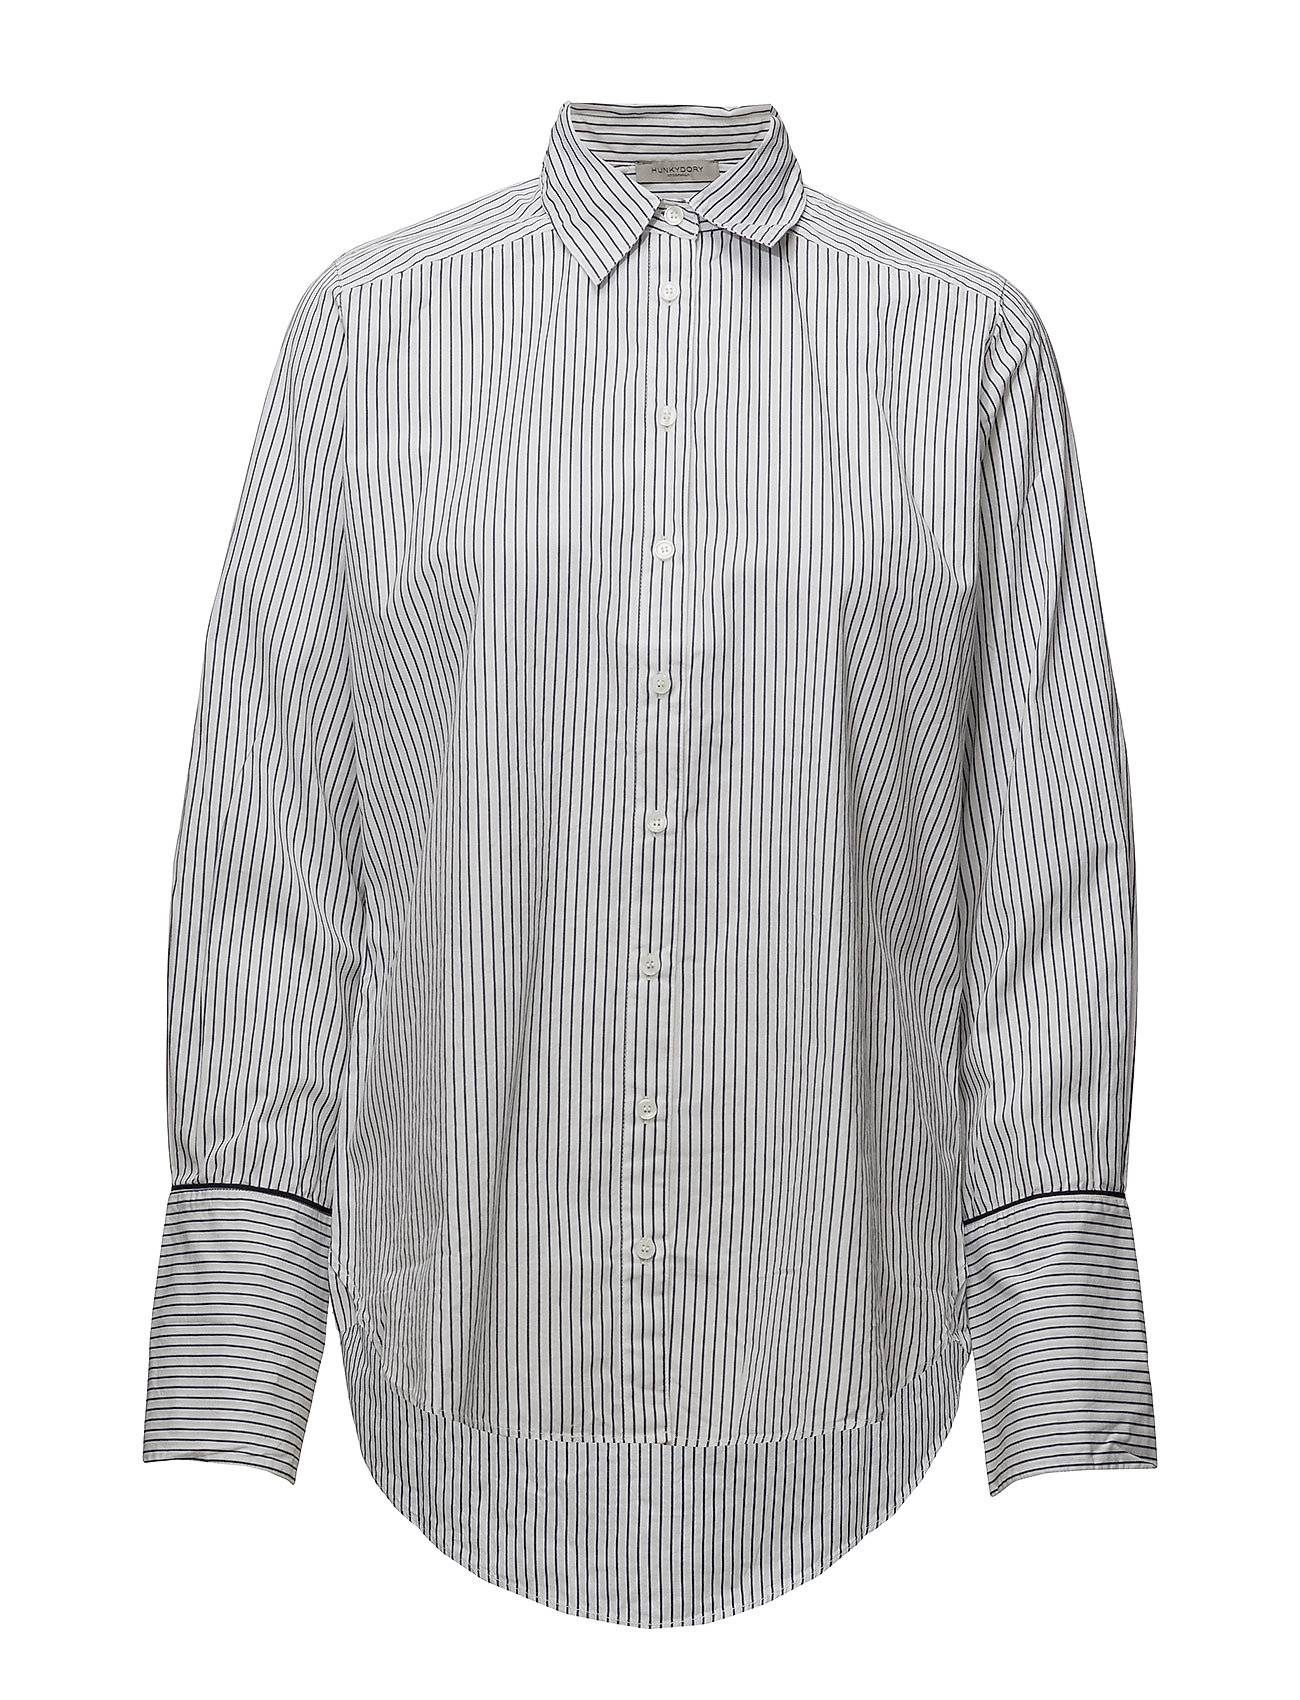 Hunkydory Striped B.D. Shirt